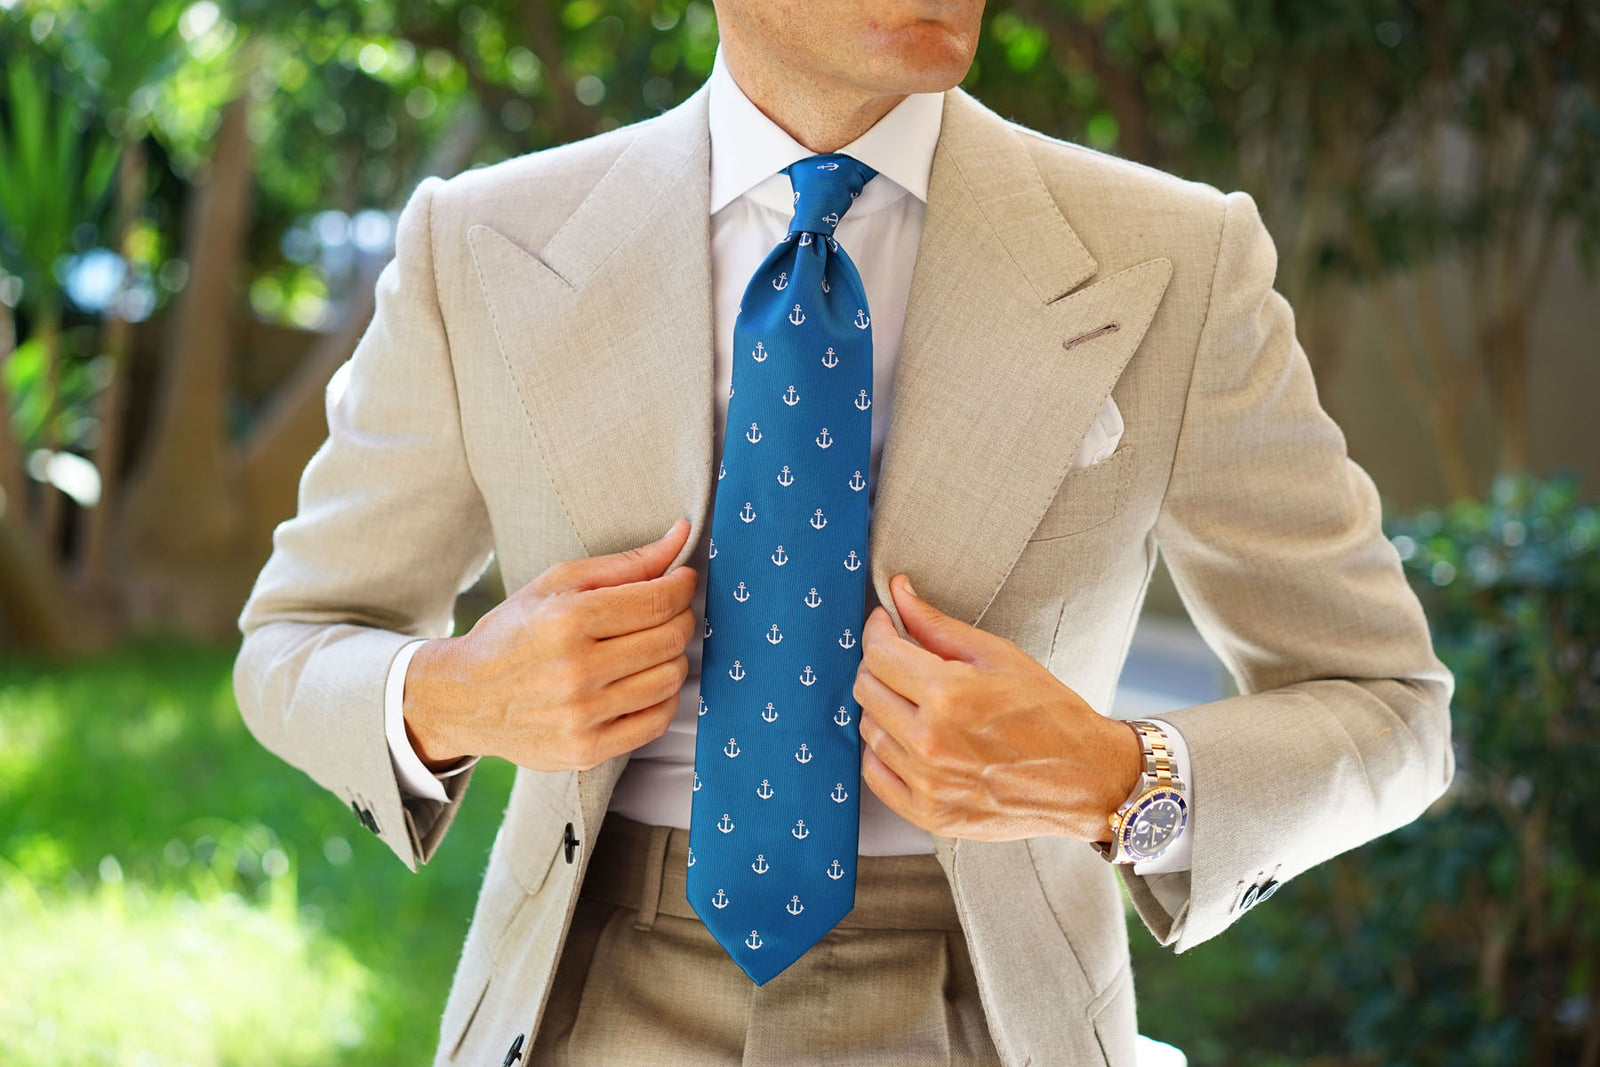 The OTAA Teal Blue Anchor Necktie